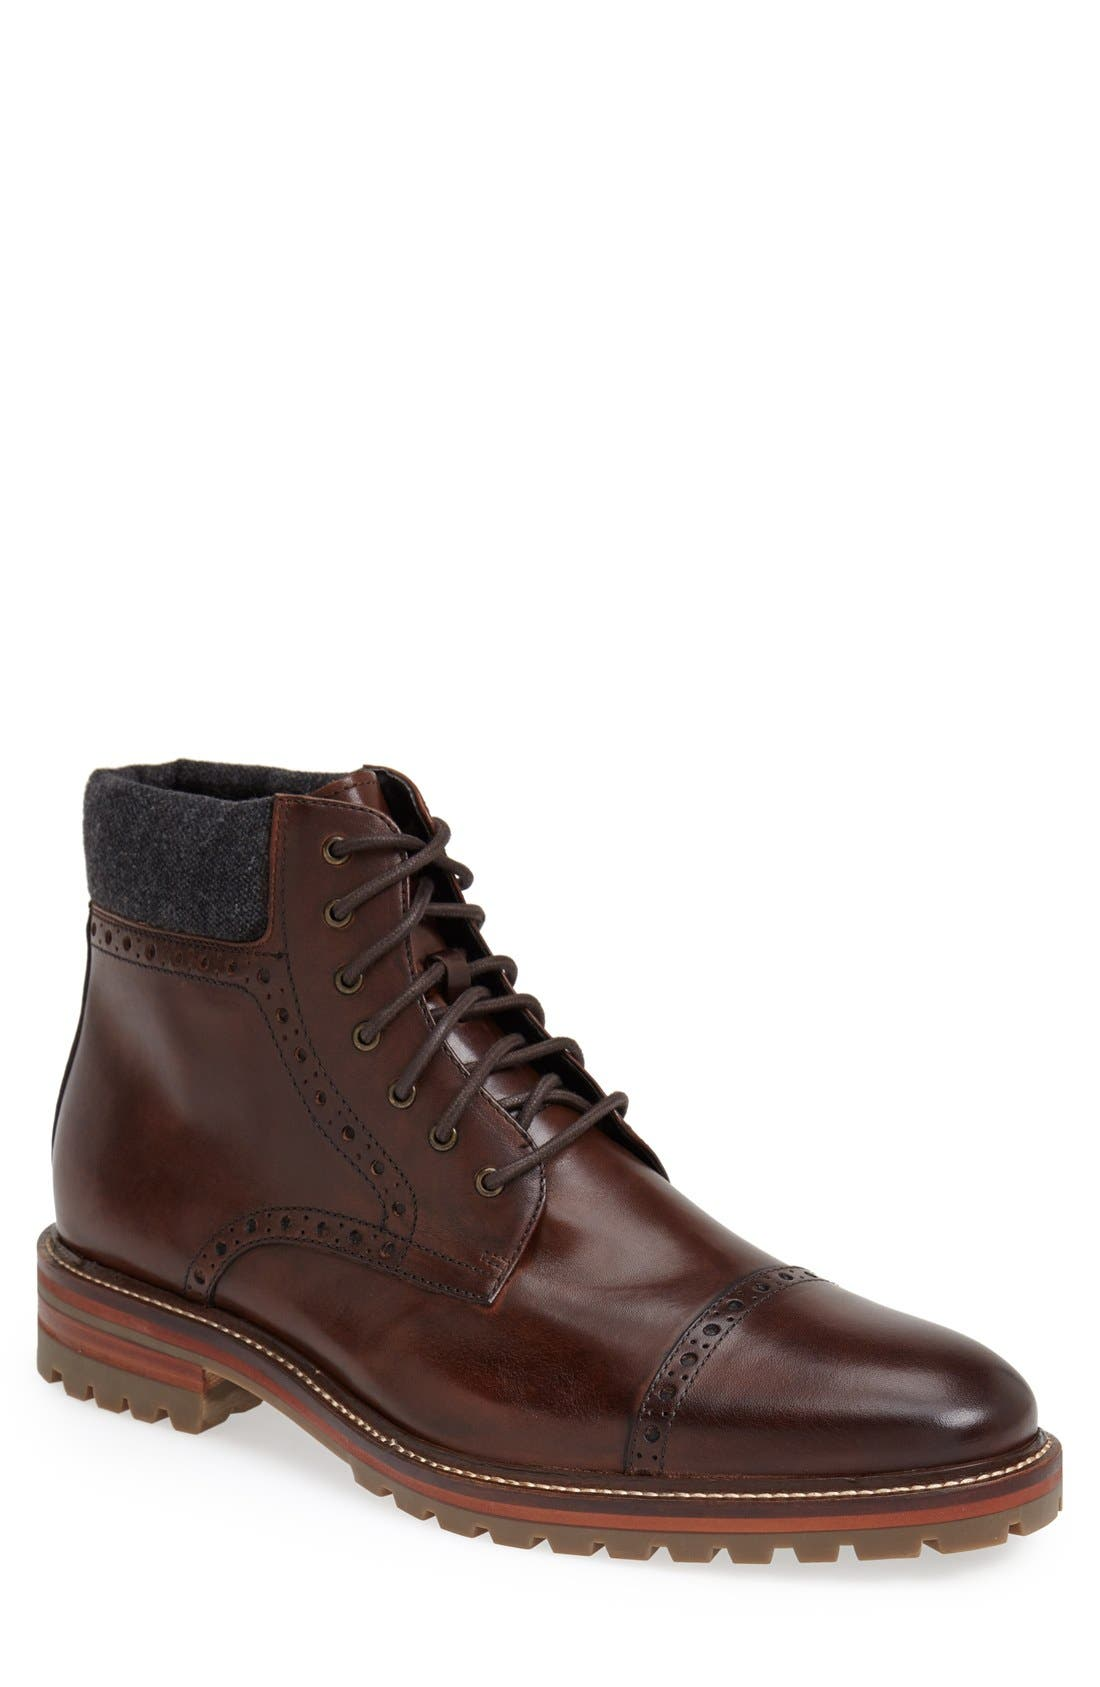 J&M 1850, 'Karnes' Brogue Cap Toe Boot, Main thumbnail 1, color, DARK BROWN LEATHER